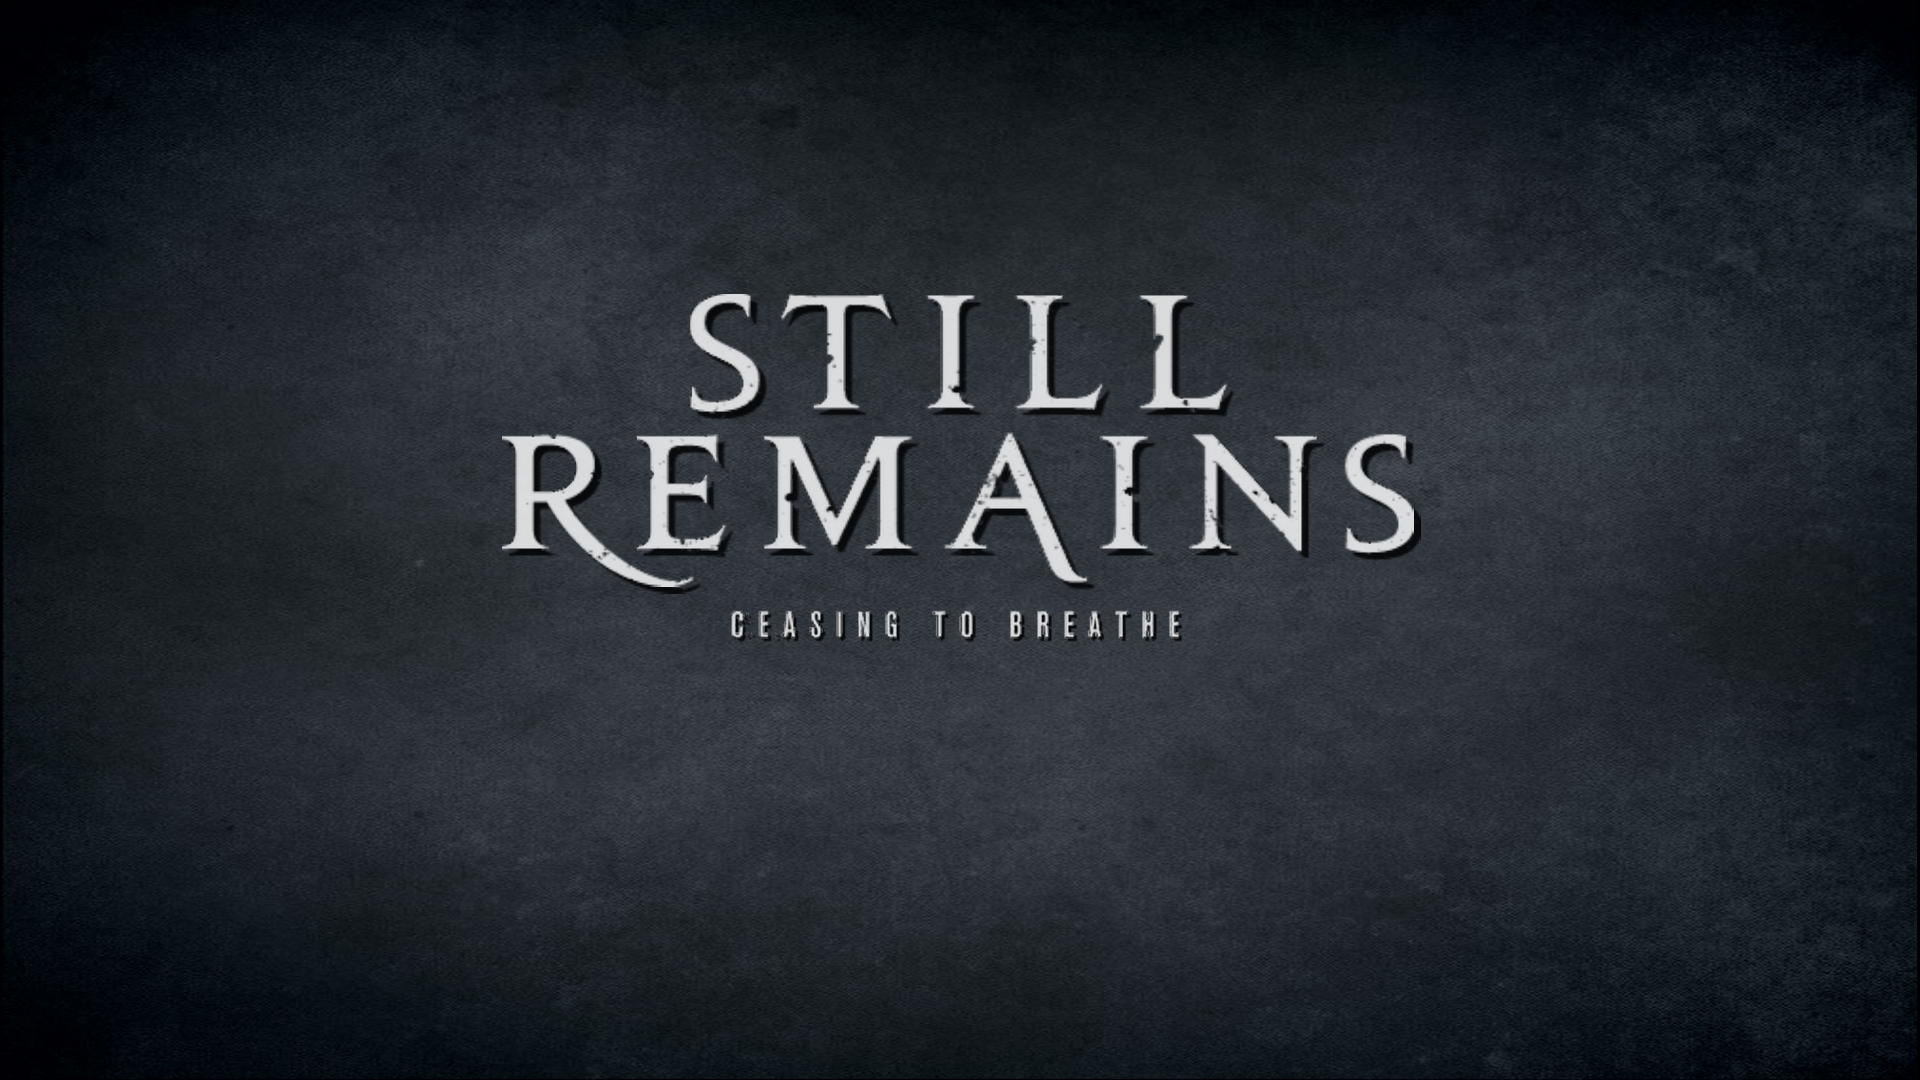 Still Remains - Ceasing To Breathe Wallpaper by paulogracioli666